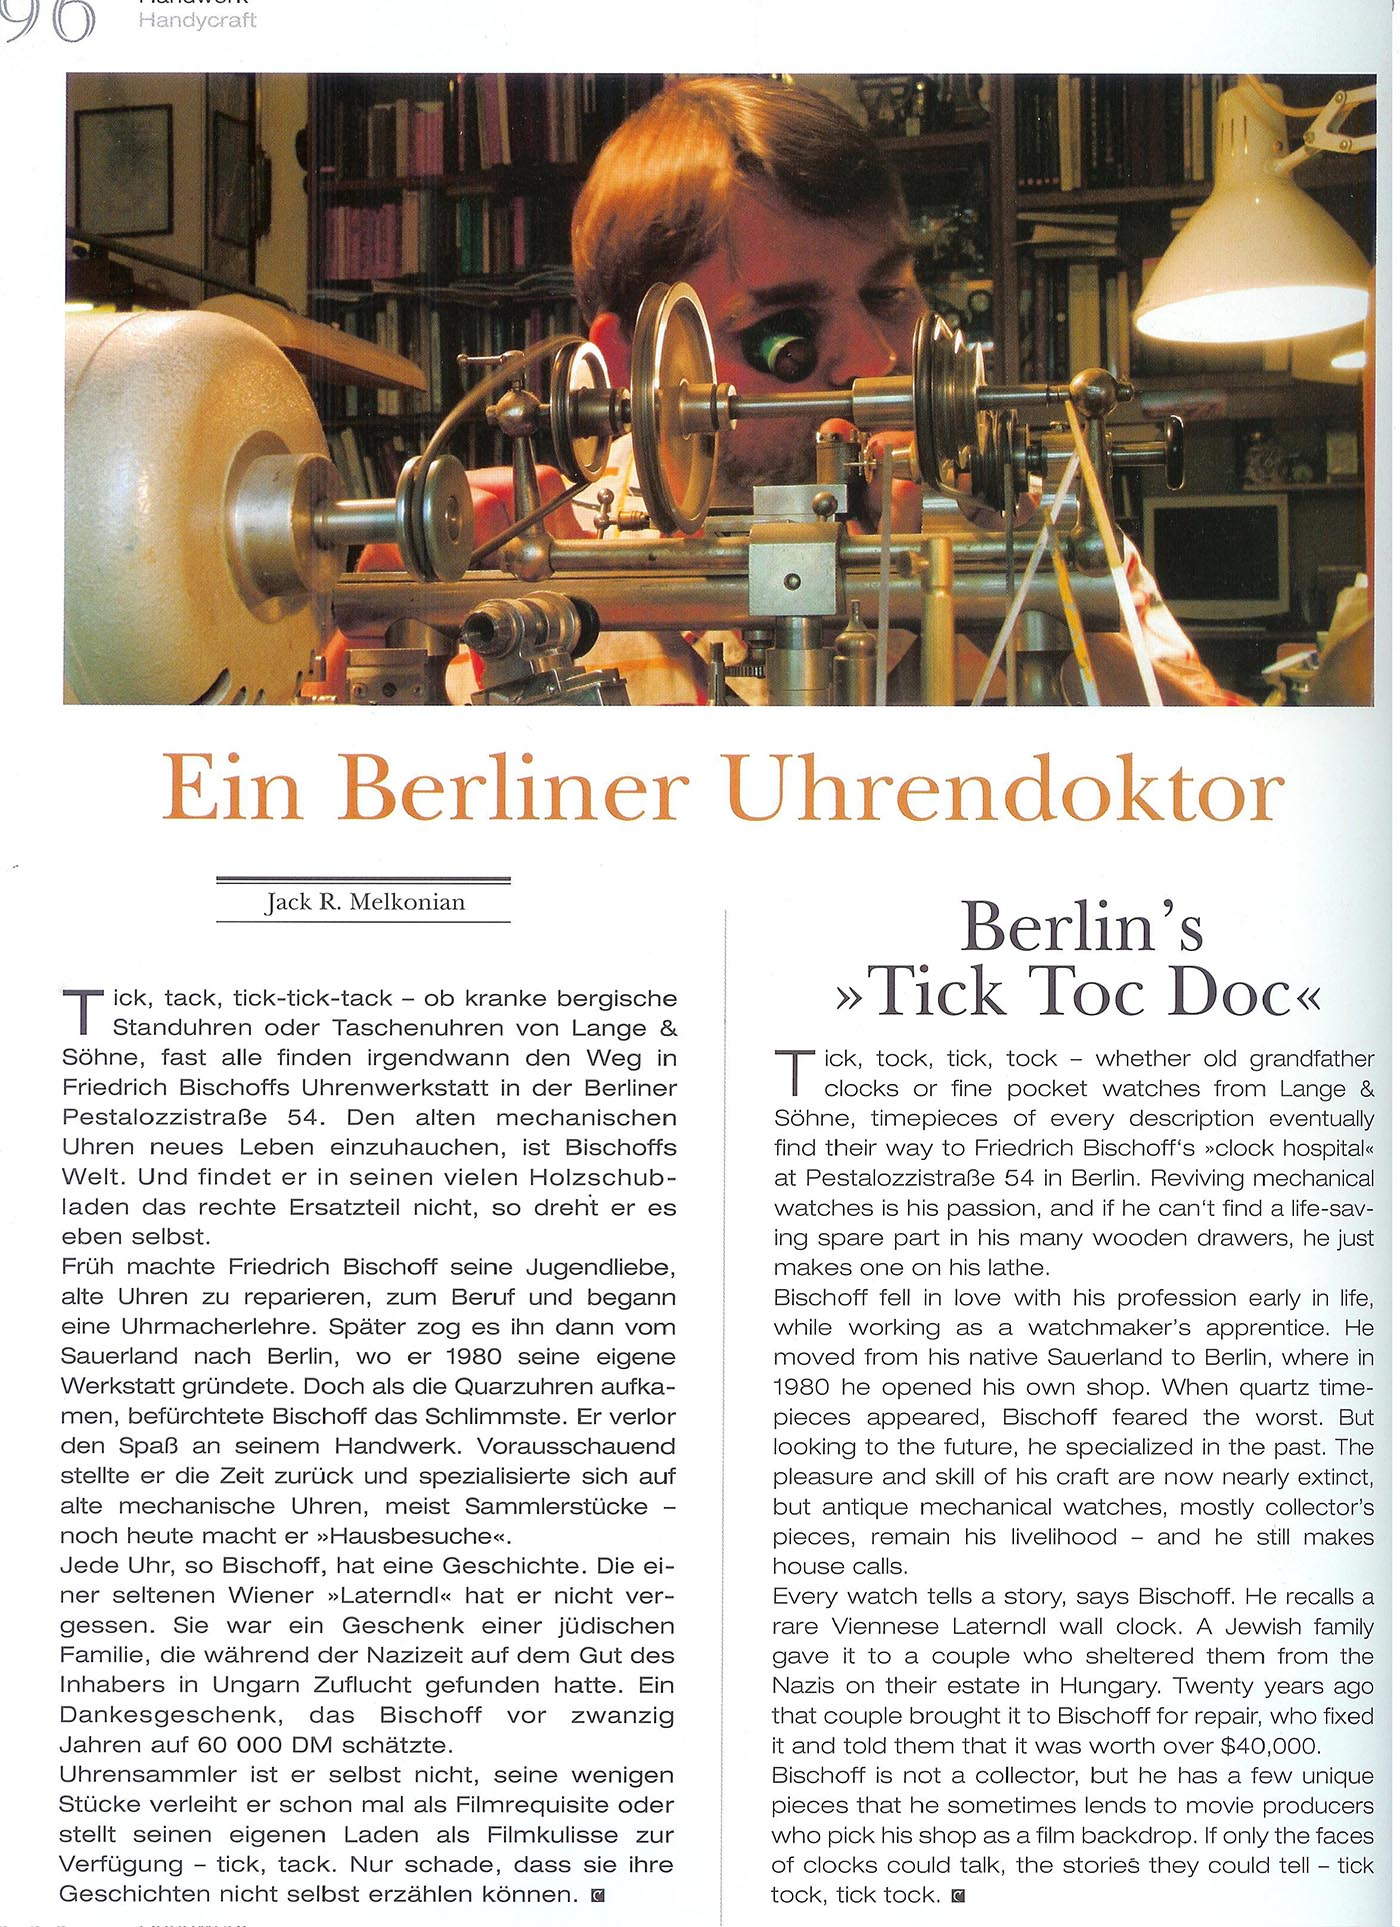 DAS JOURNAL FÜR LEBENSKULTUR | THE LIFESTYLE MAGAZINE | September/Oktober/November 2005